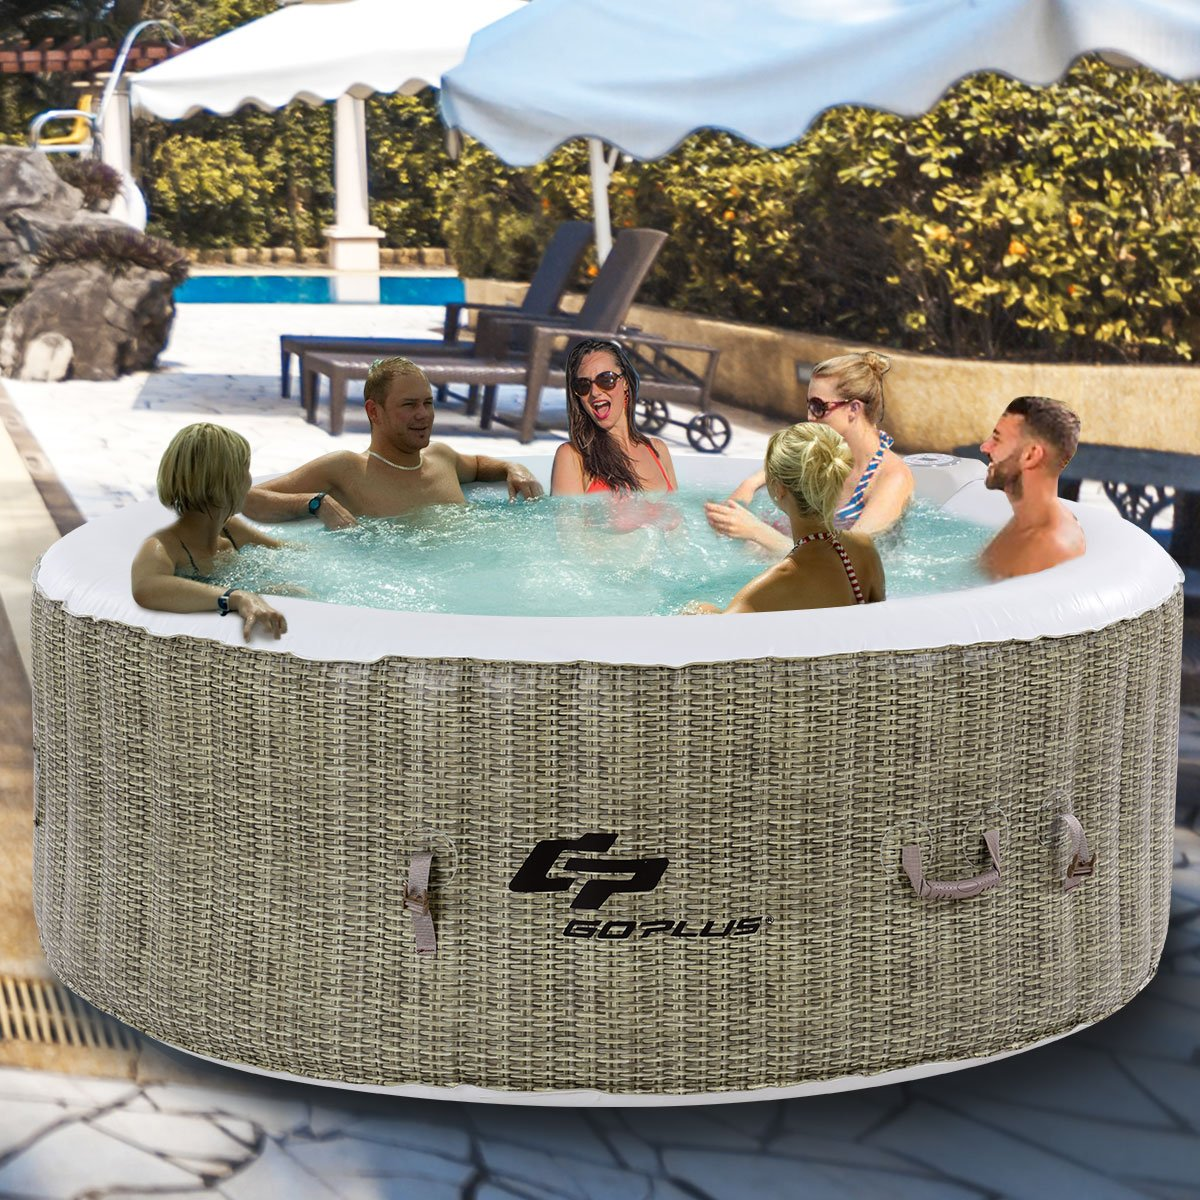 Cheap Spa Tub Jets, find Spa Tub Jets deals on line at Alibaba.com